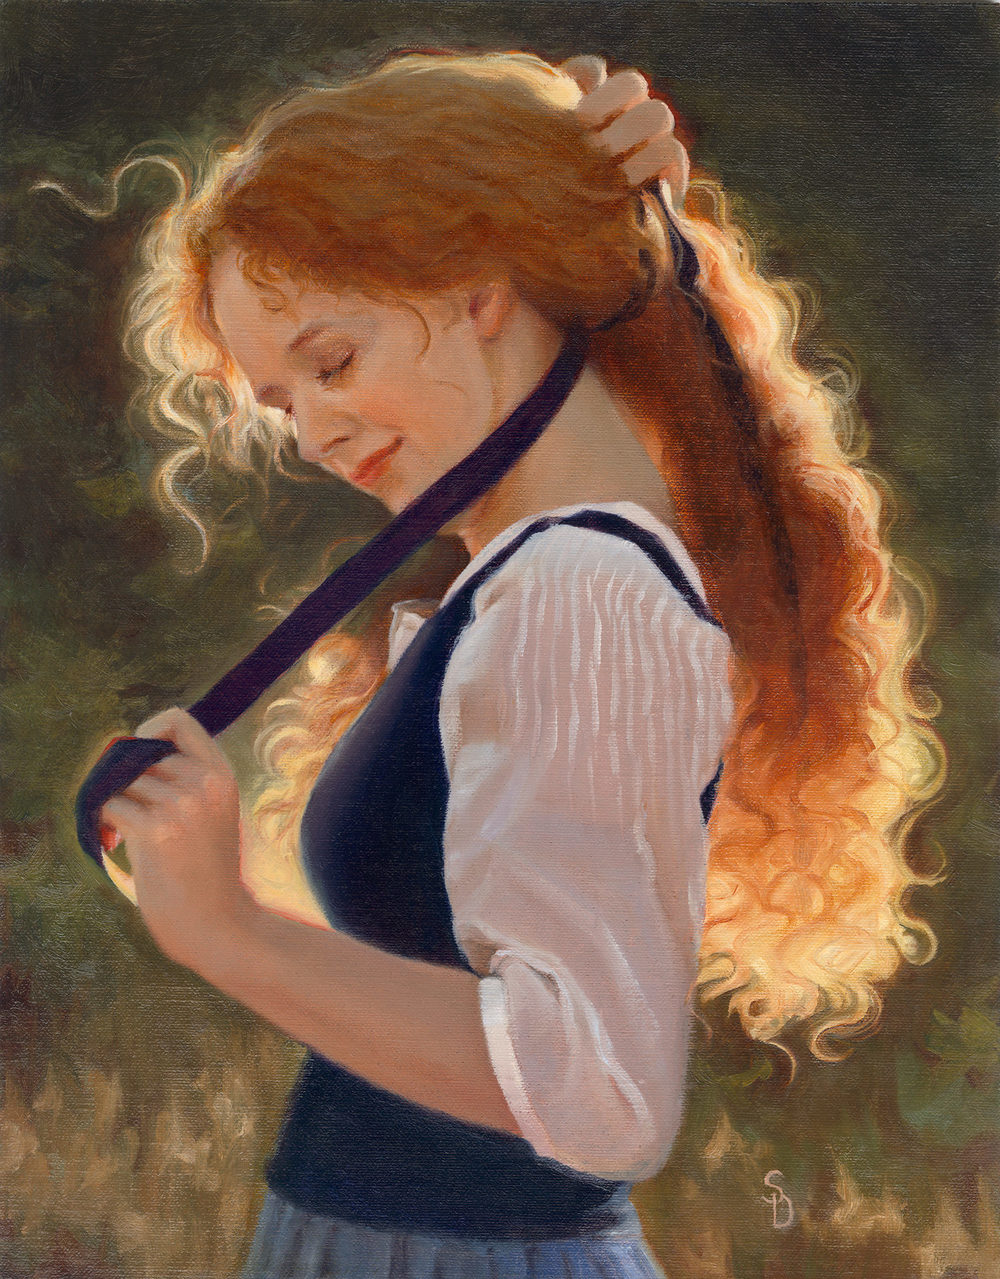 Ribbon's in My Hair - 14 x 11 Oil on Linen